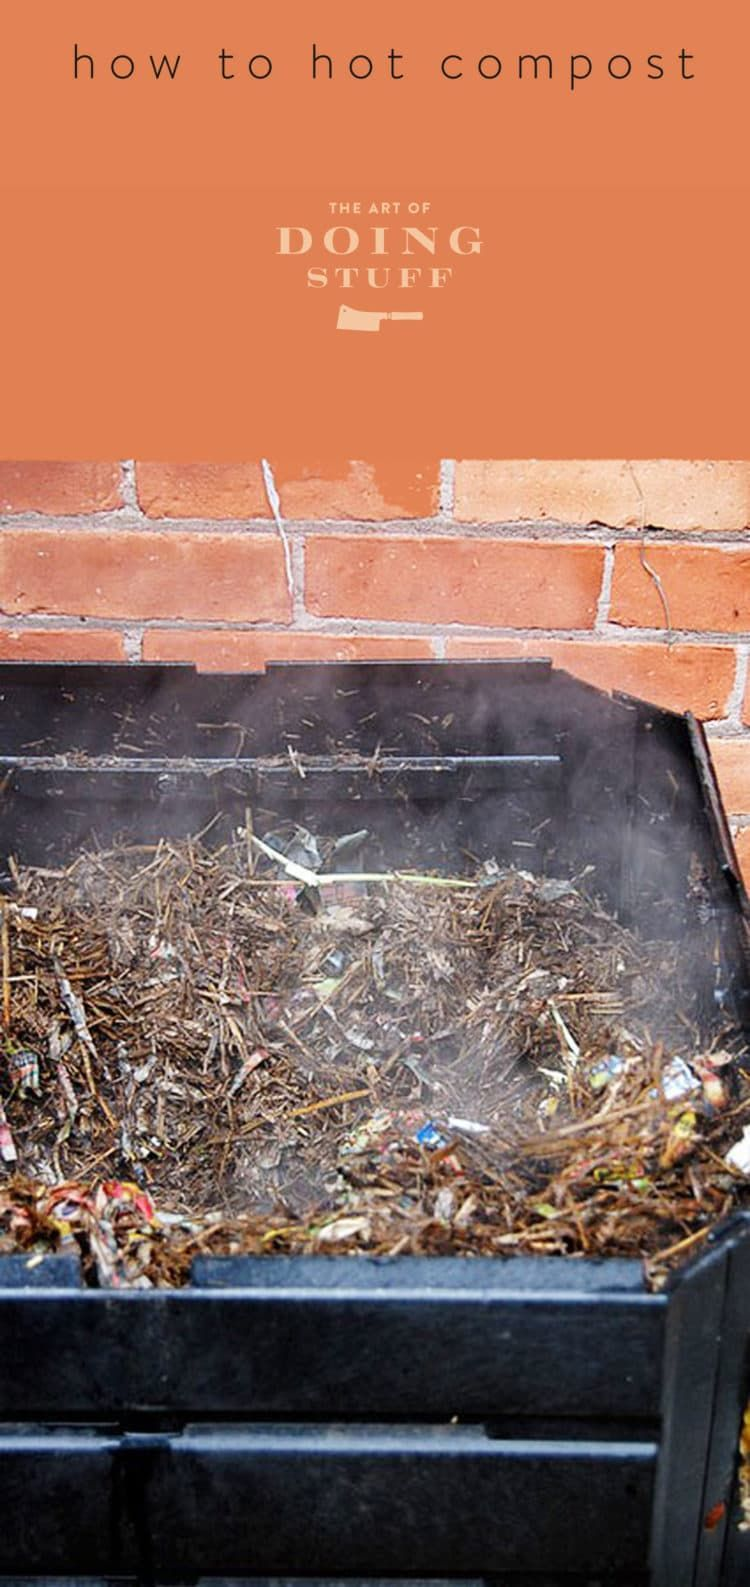 HOW TO HOT COMPOST Manure composting, Compost, Garden